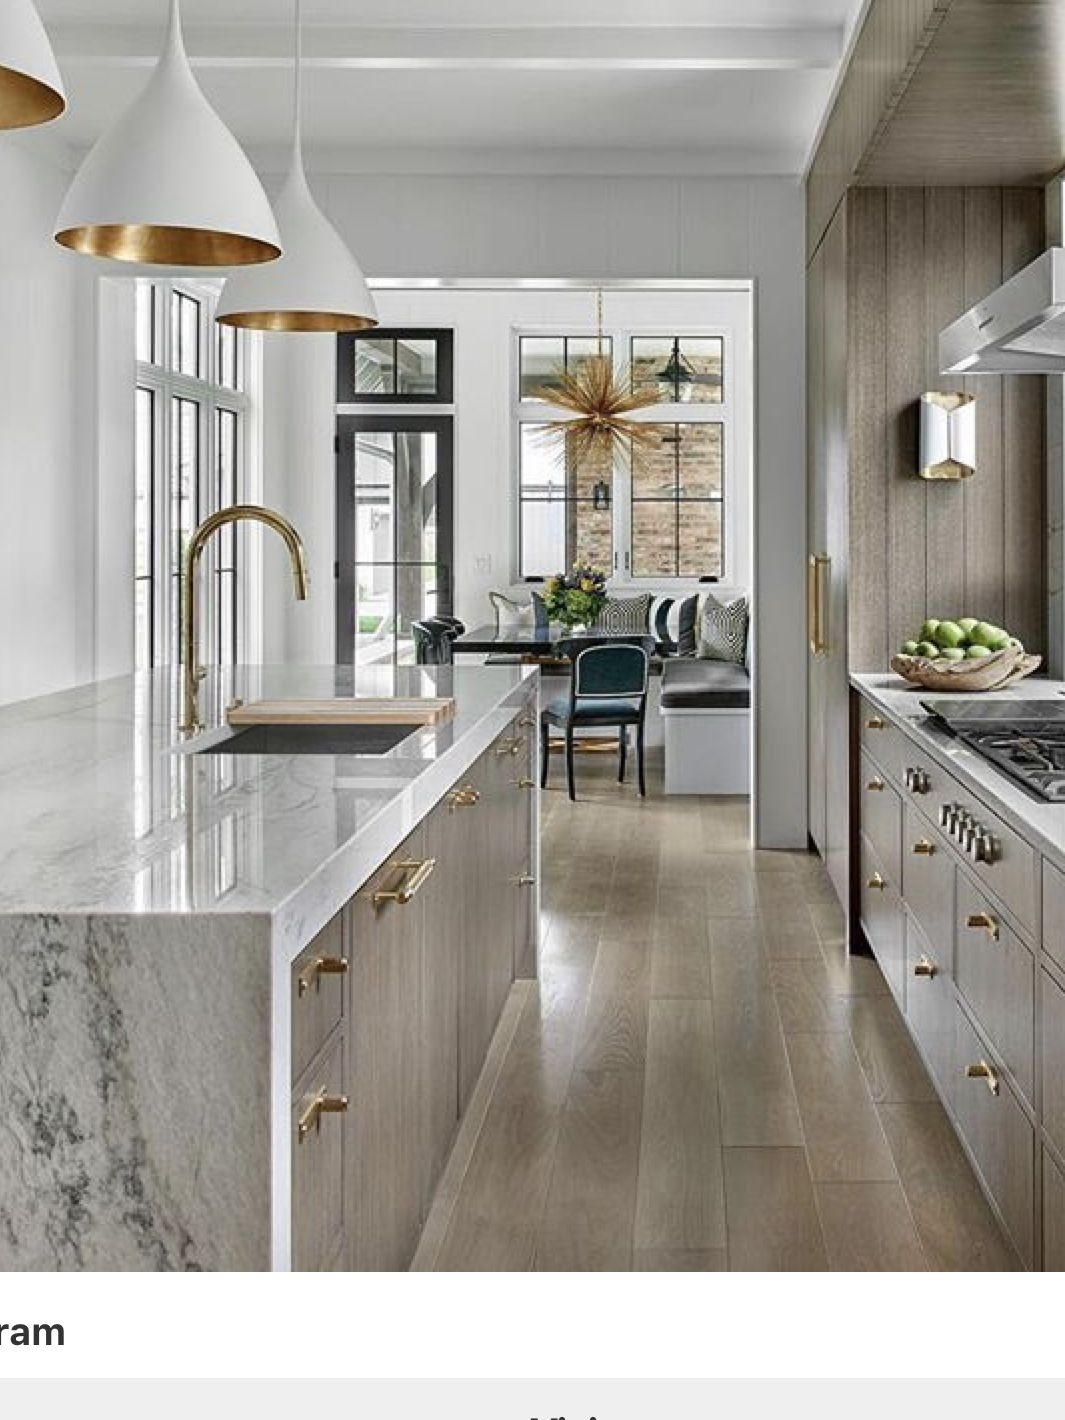 pin by barbara carson on kitchen in 2019 best flooring for kitchen refacing kitchen cabinets on kitchen cabinets refacing id=30539